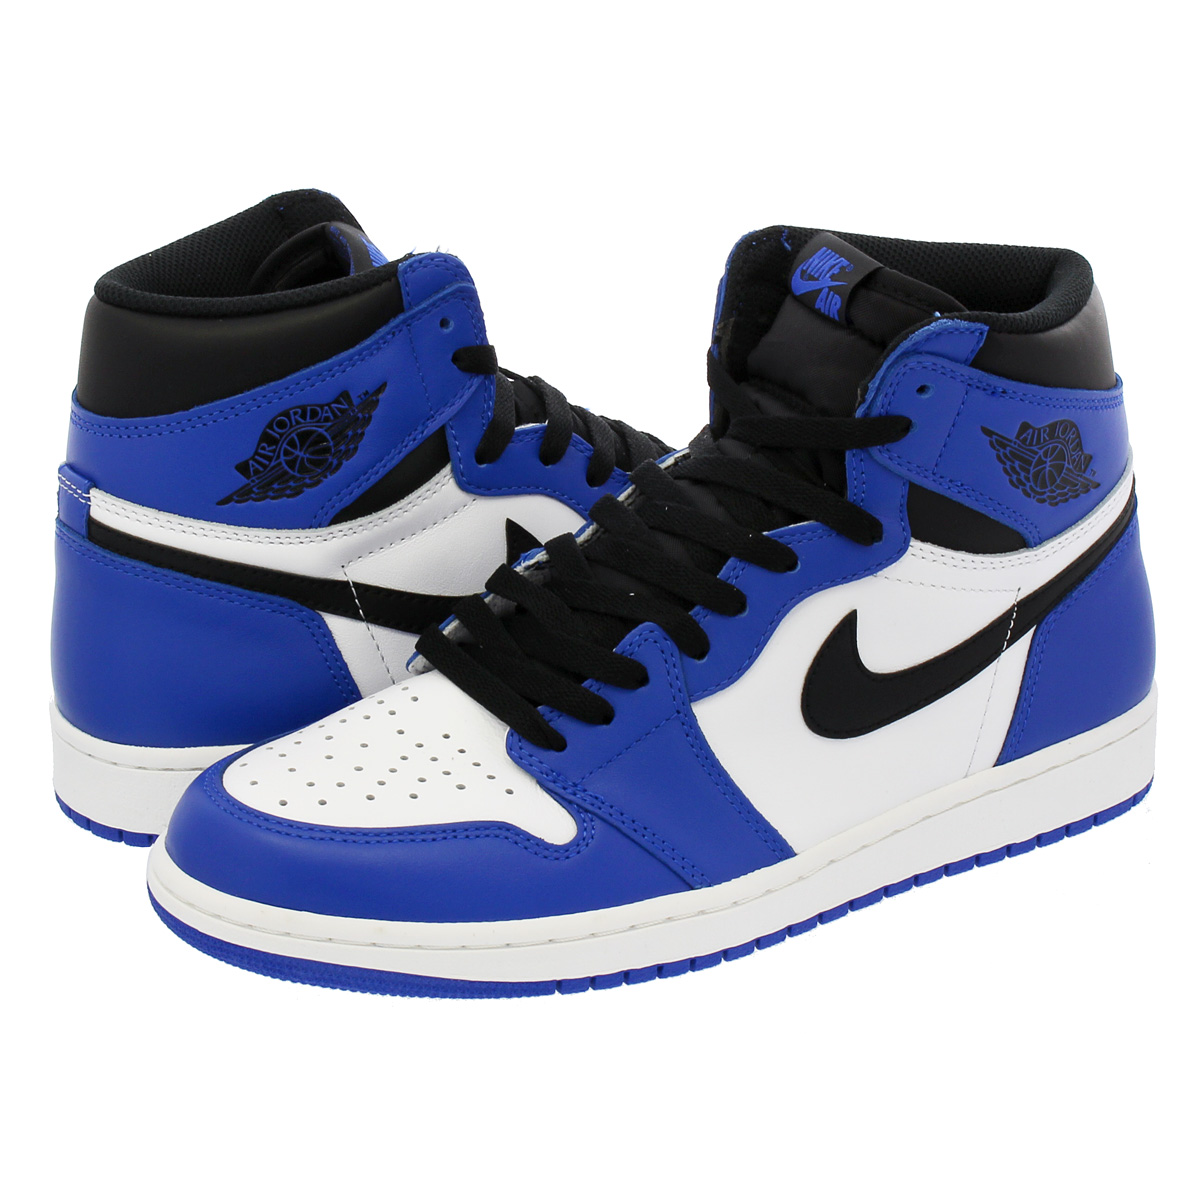 335df7b1ff2a NIKE AIR JORDAN 1 RETRO HIGH OG Nike Air Jordan 1 nostalgic high OG GAME  ROYAL SUMMIT WHITE BLACK